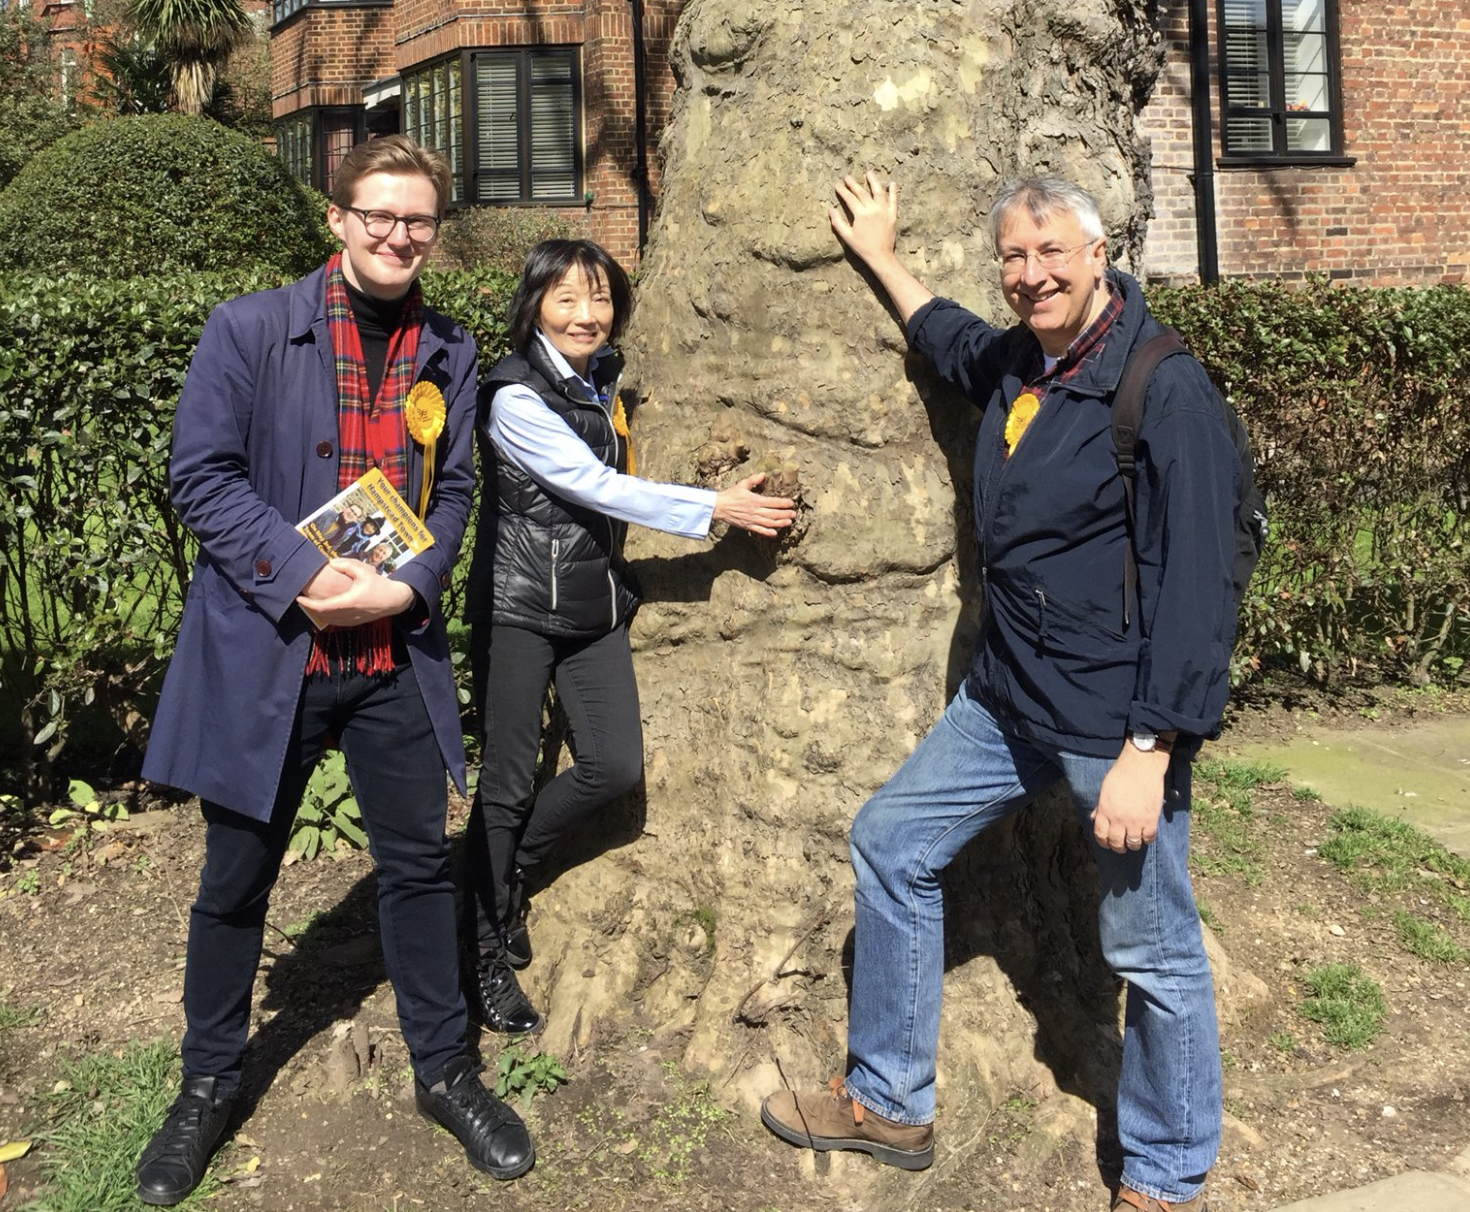 Left to Right: Will Coles, Linda Chung & Andrew Haslam Jones (Liberal Democrats)